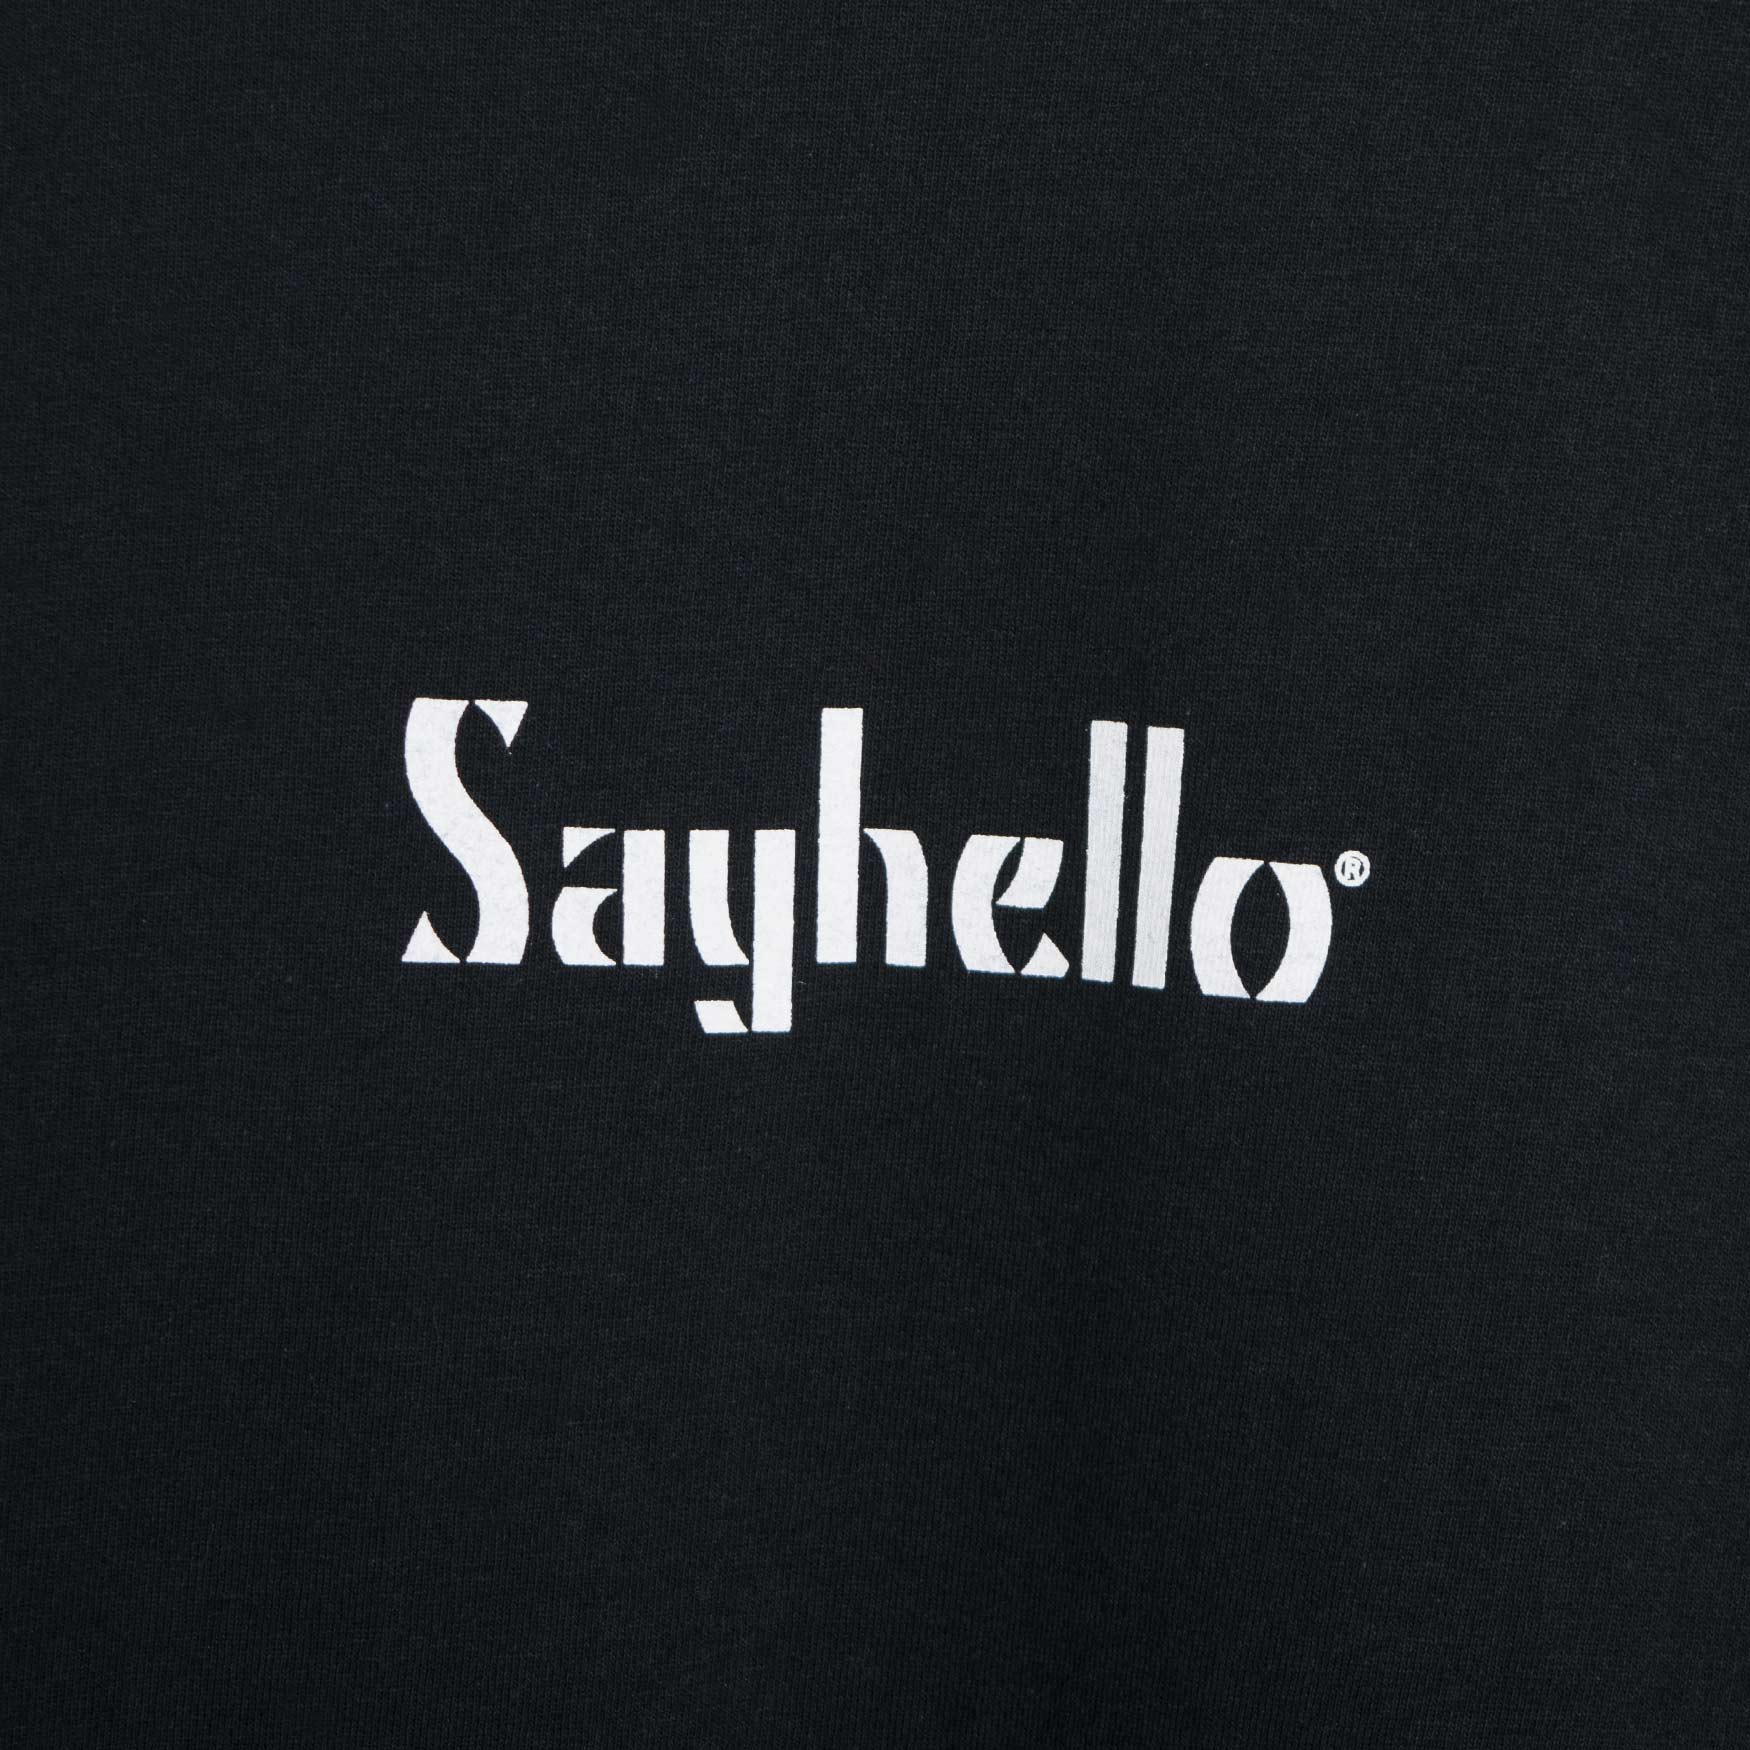 Sayhello Classic Logo T-Shirt - Black Not Listed - CARTOCON